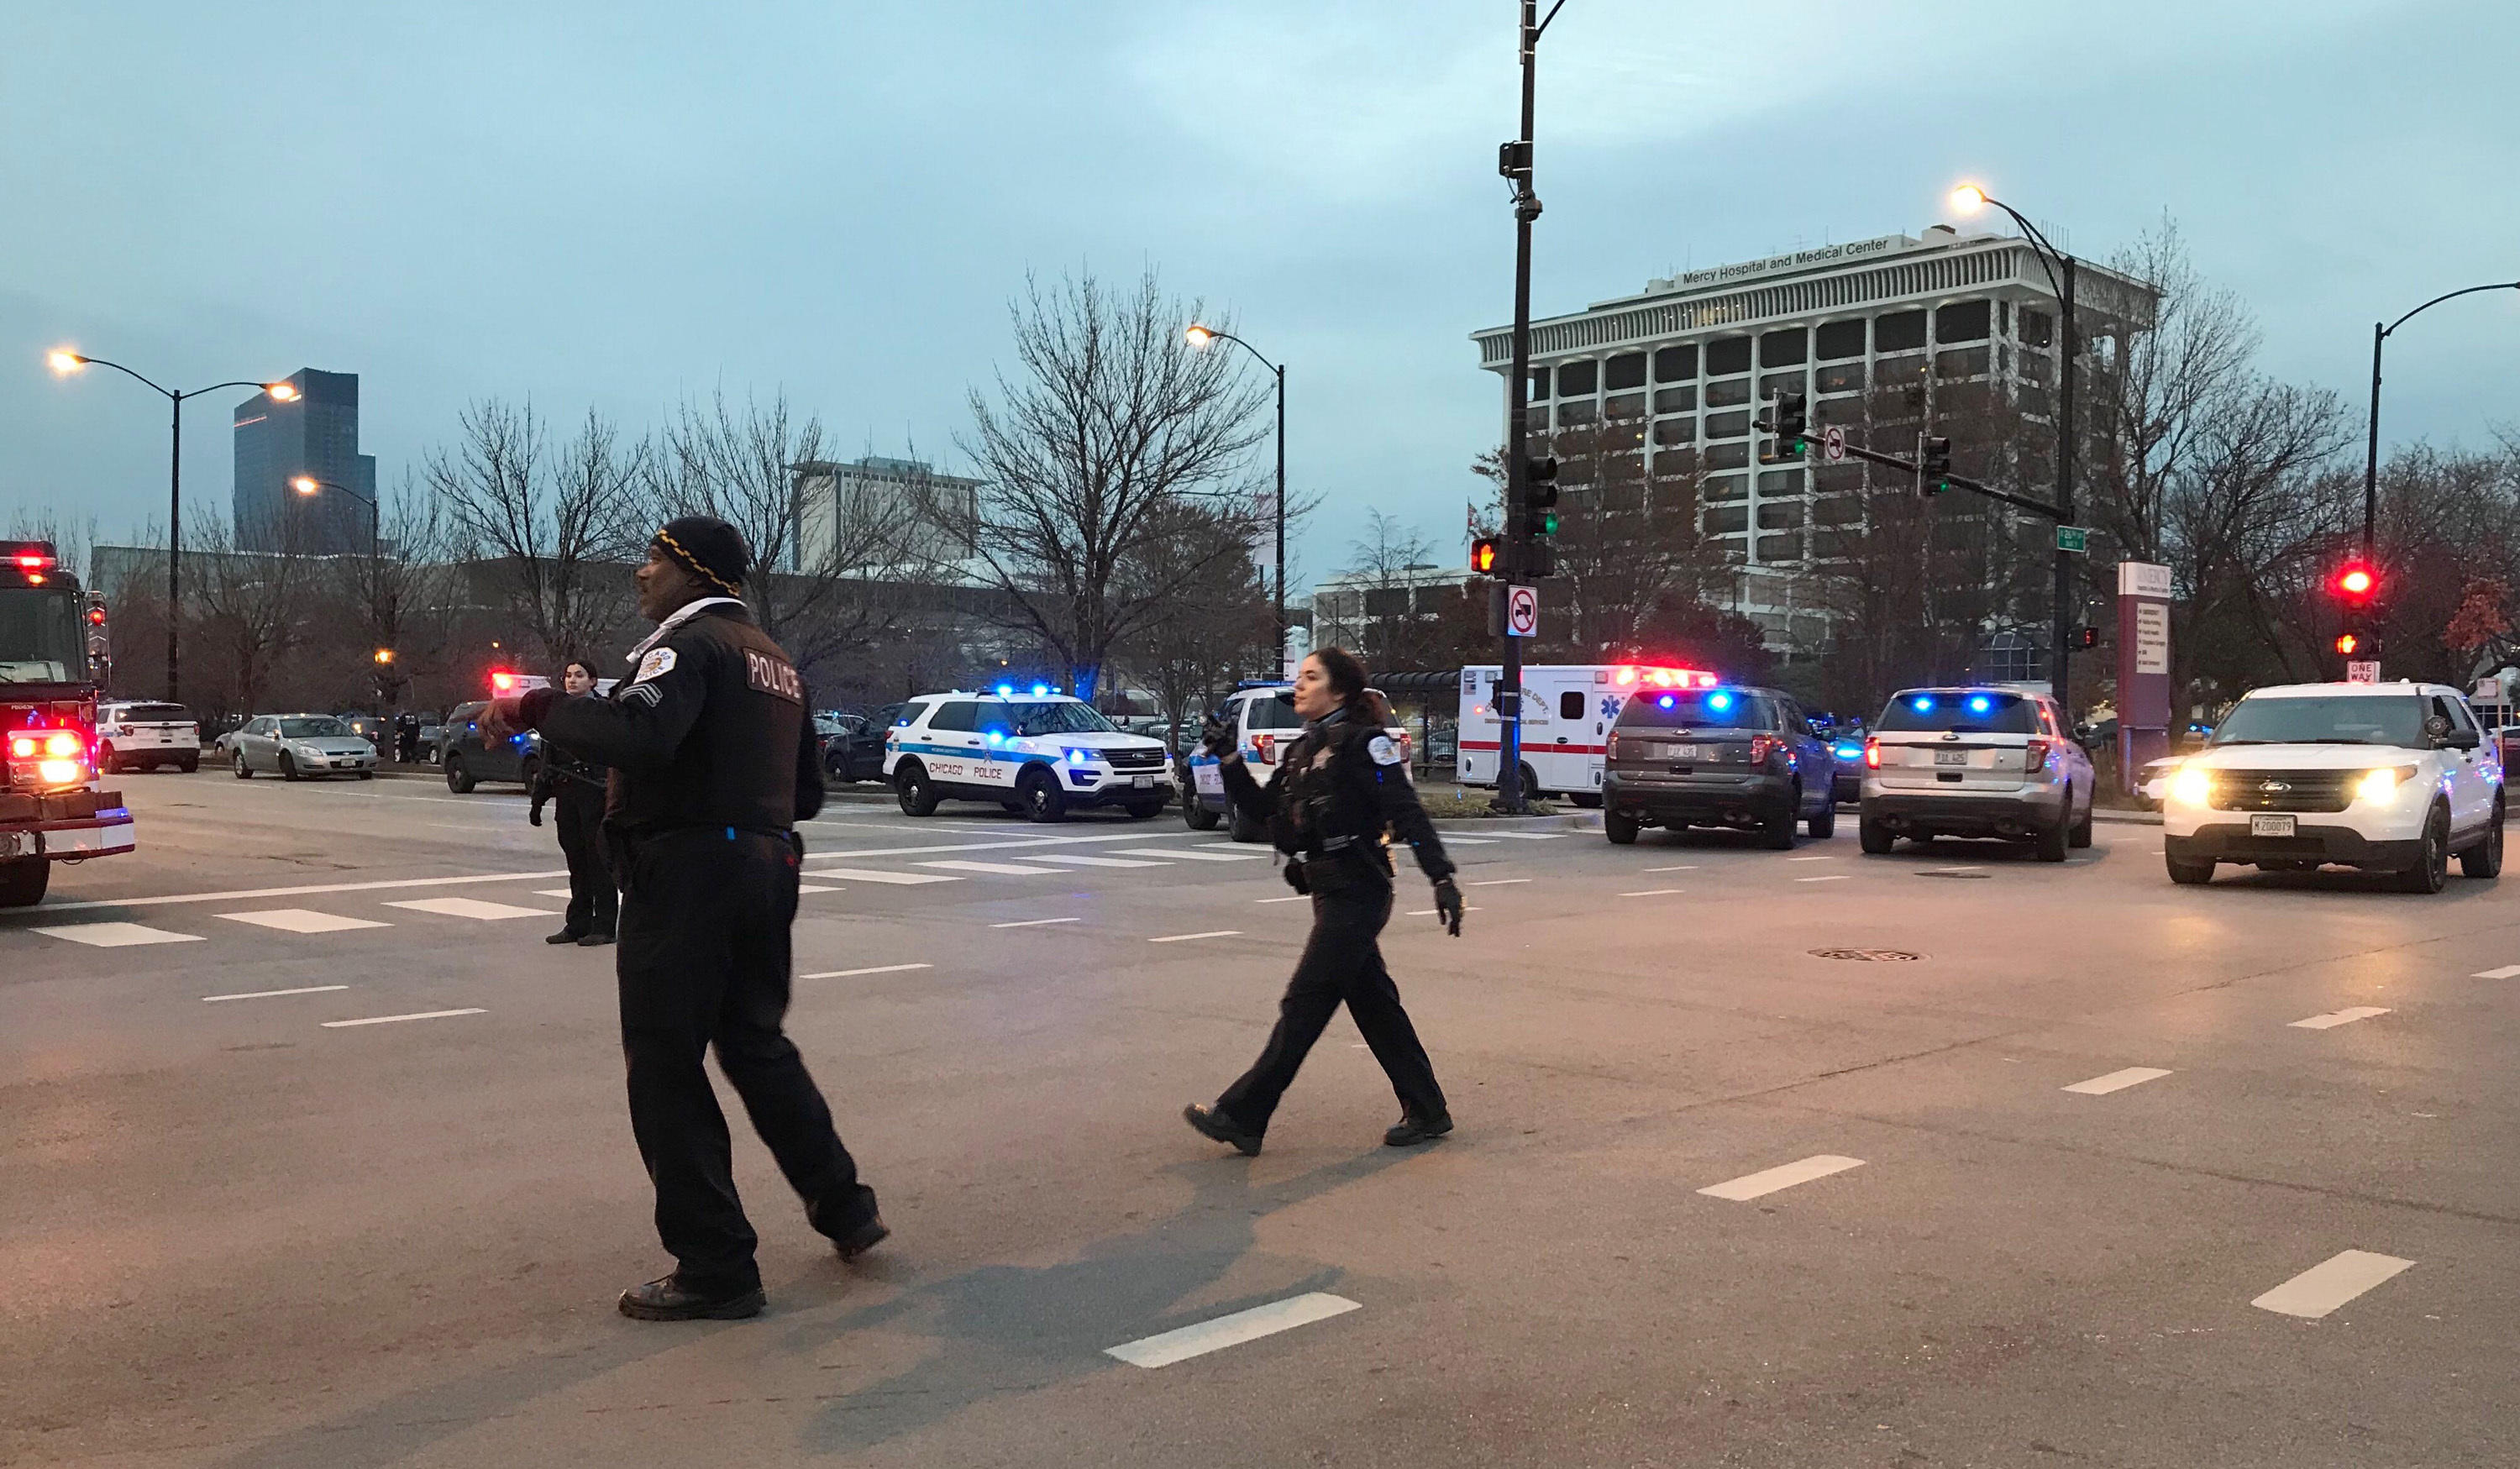 Reports of multiple victims after shooting near Chicago hospital